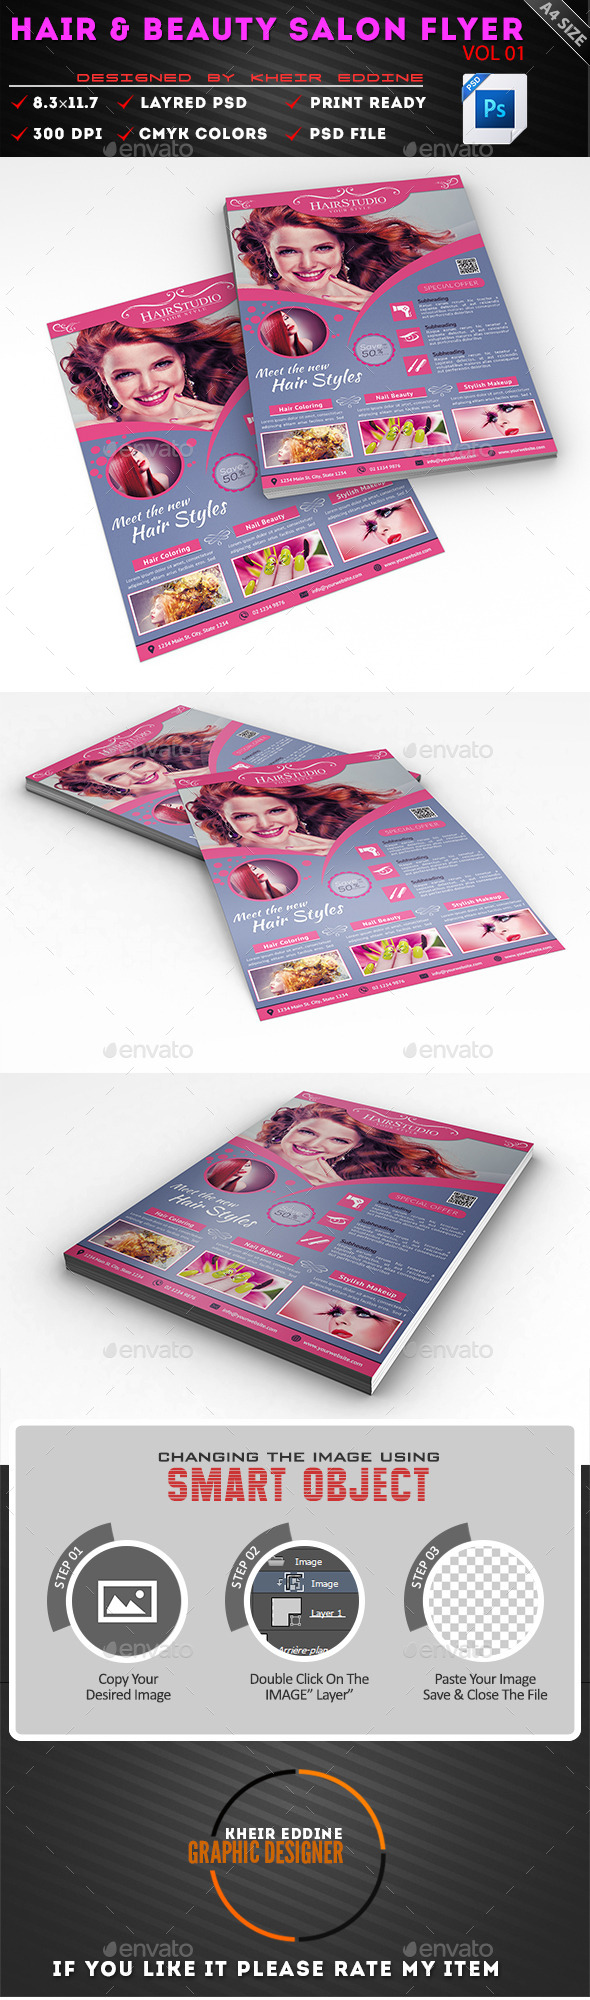 GraphicRiver Hair & Beauty Salon Flyer Vol01 11172513